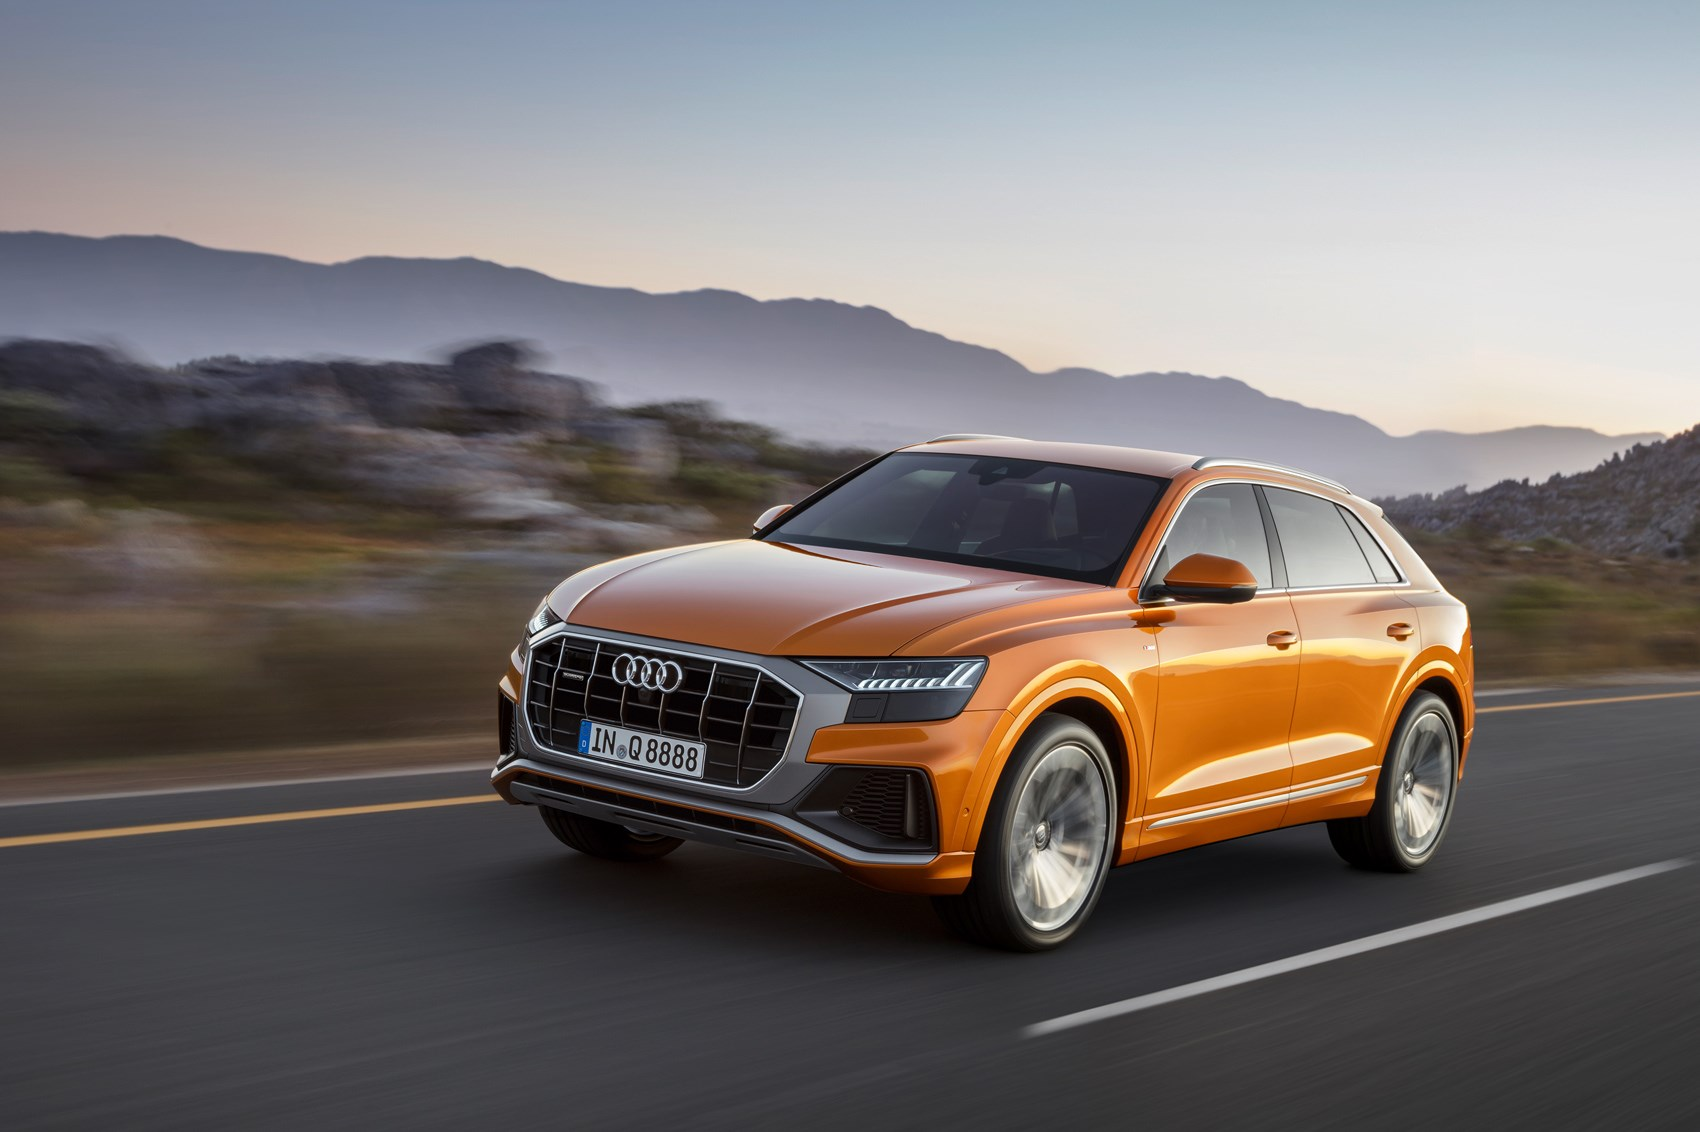 2018 Porsche Cayenne Release Date >> New Audi Q8 (2018) SUV: Ingolstadt's new flagship SUV arrives by CAR Magazine